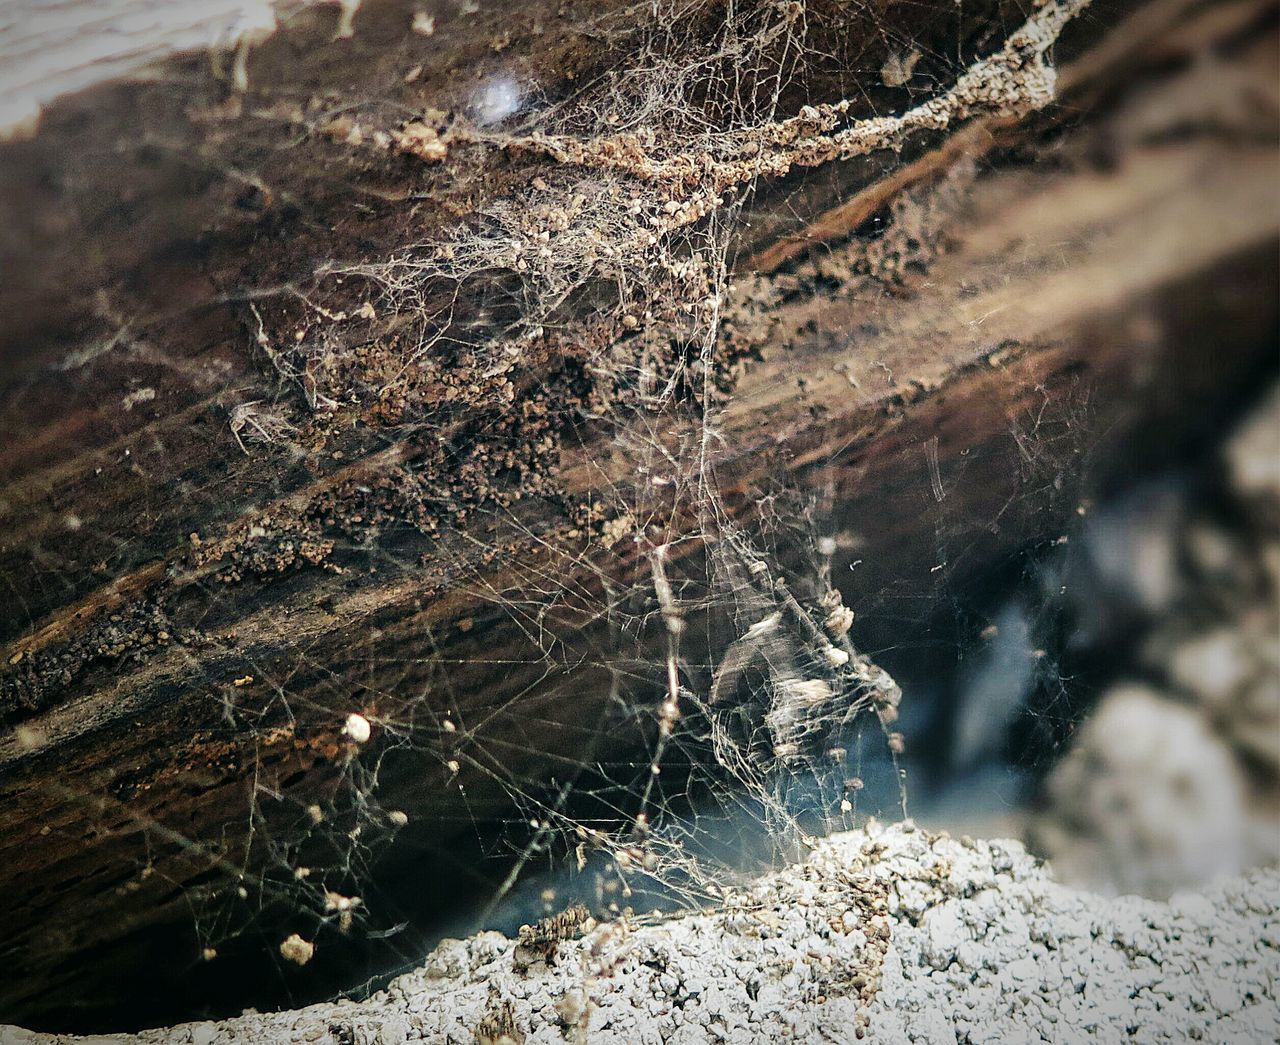 https://youtu.be/DniLmS-vm5M (....) Seeing Things Walking With You Minimalobsession Spiderweb Lostplaces EyeEm_abandonment EyeEm Best Edits Taking Photos Infinite Sadness Textures And Surfaces